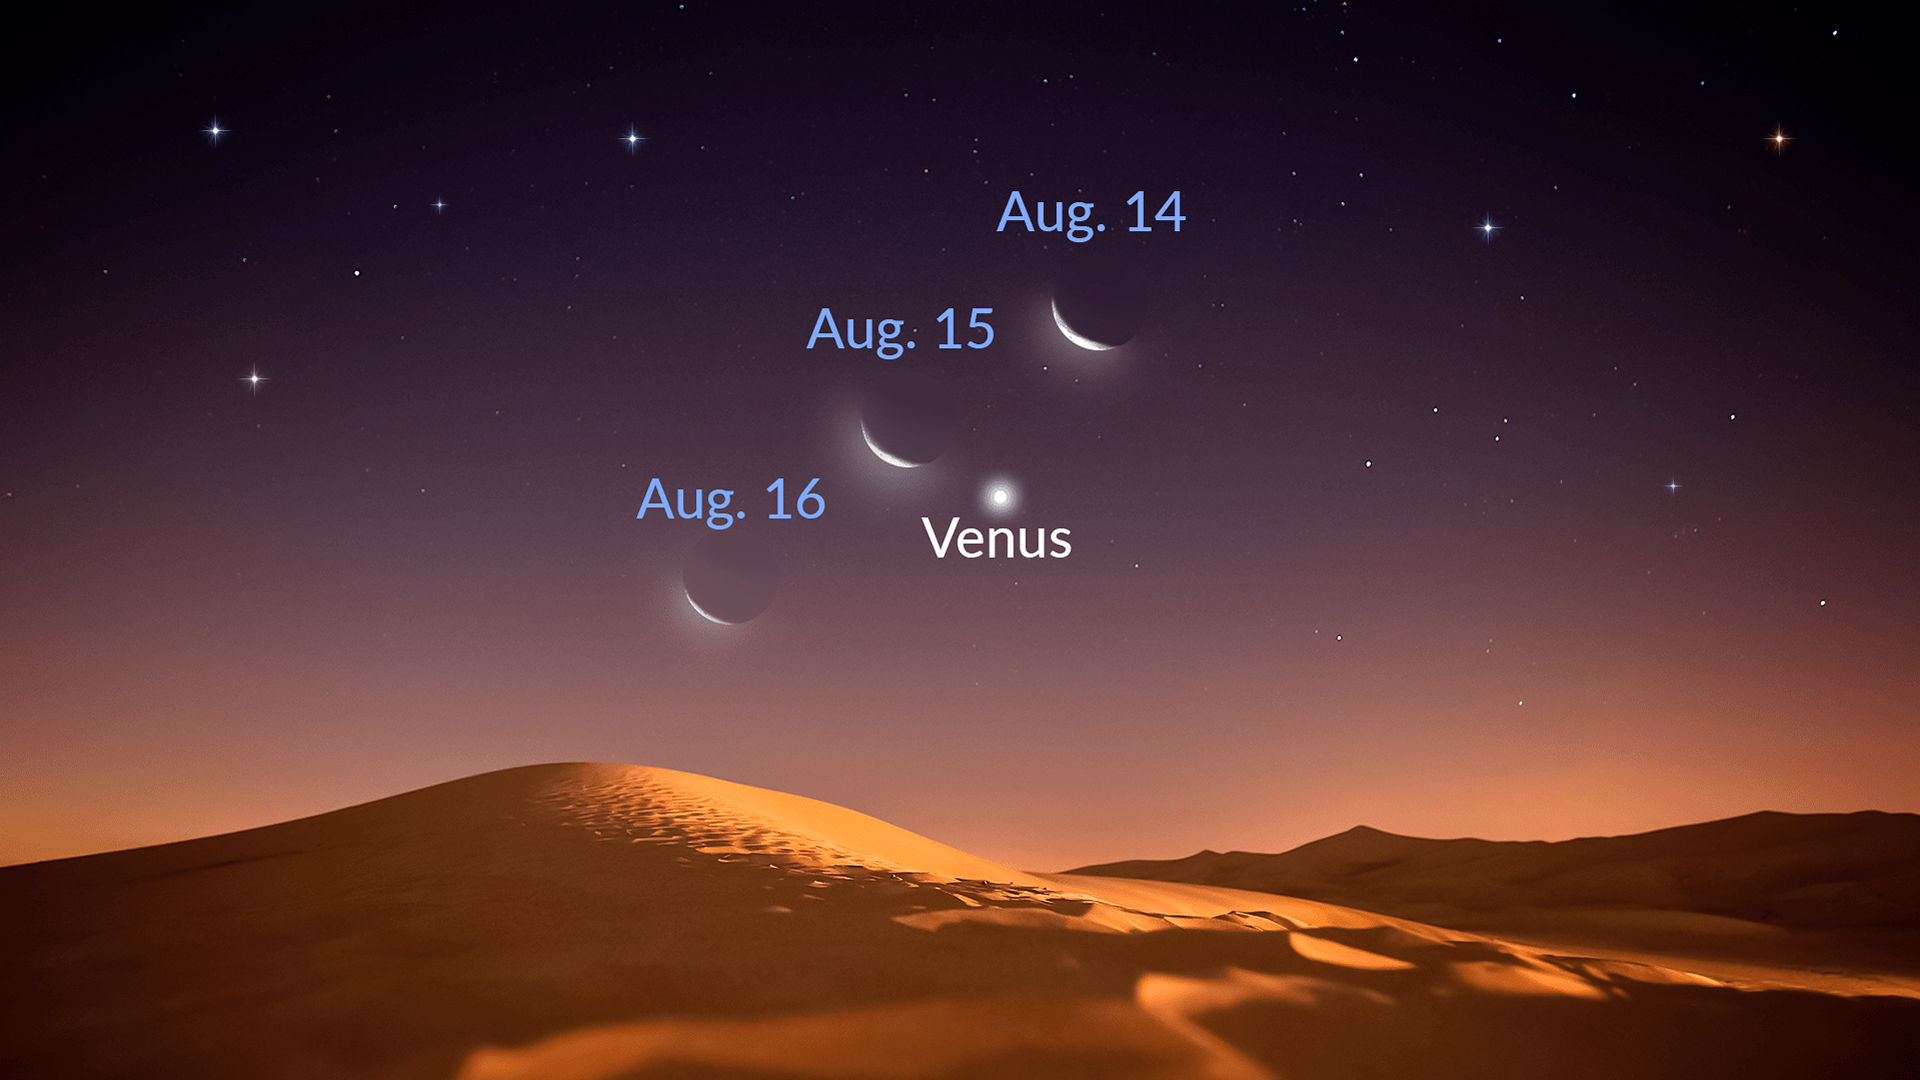 The Moon Joins Brilliant Venus in the August Sky